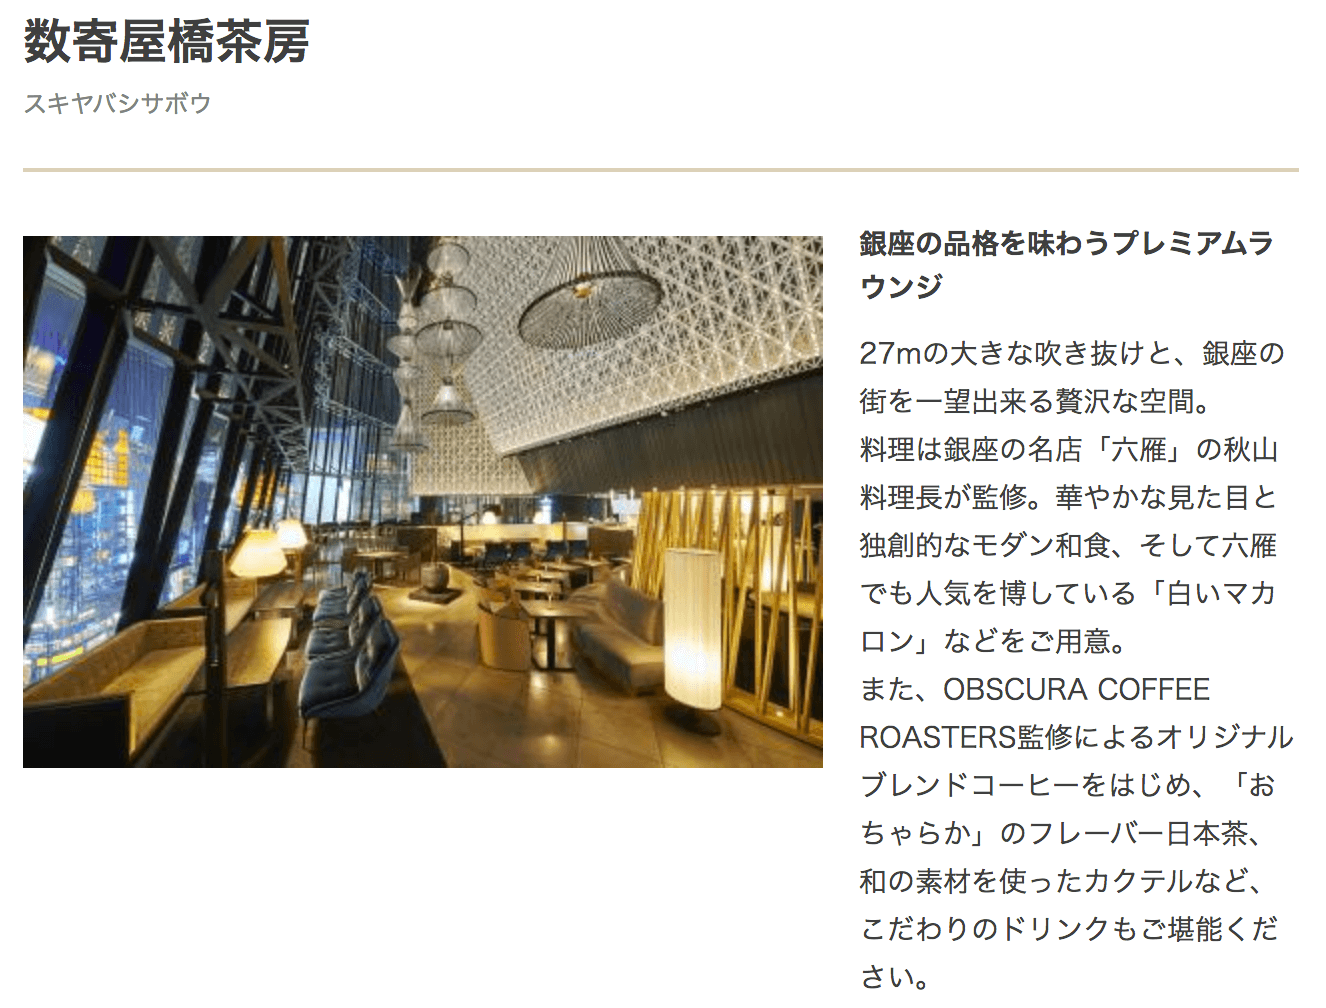 THE GREEN Cafe American Express 数寄屋橋茶房